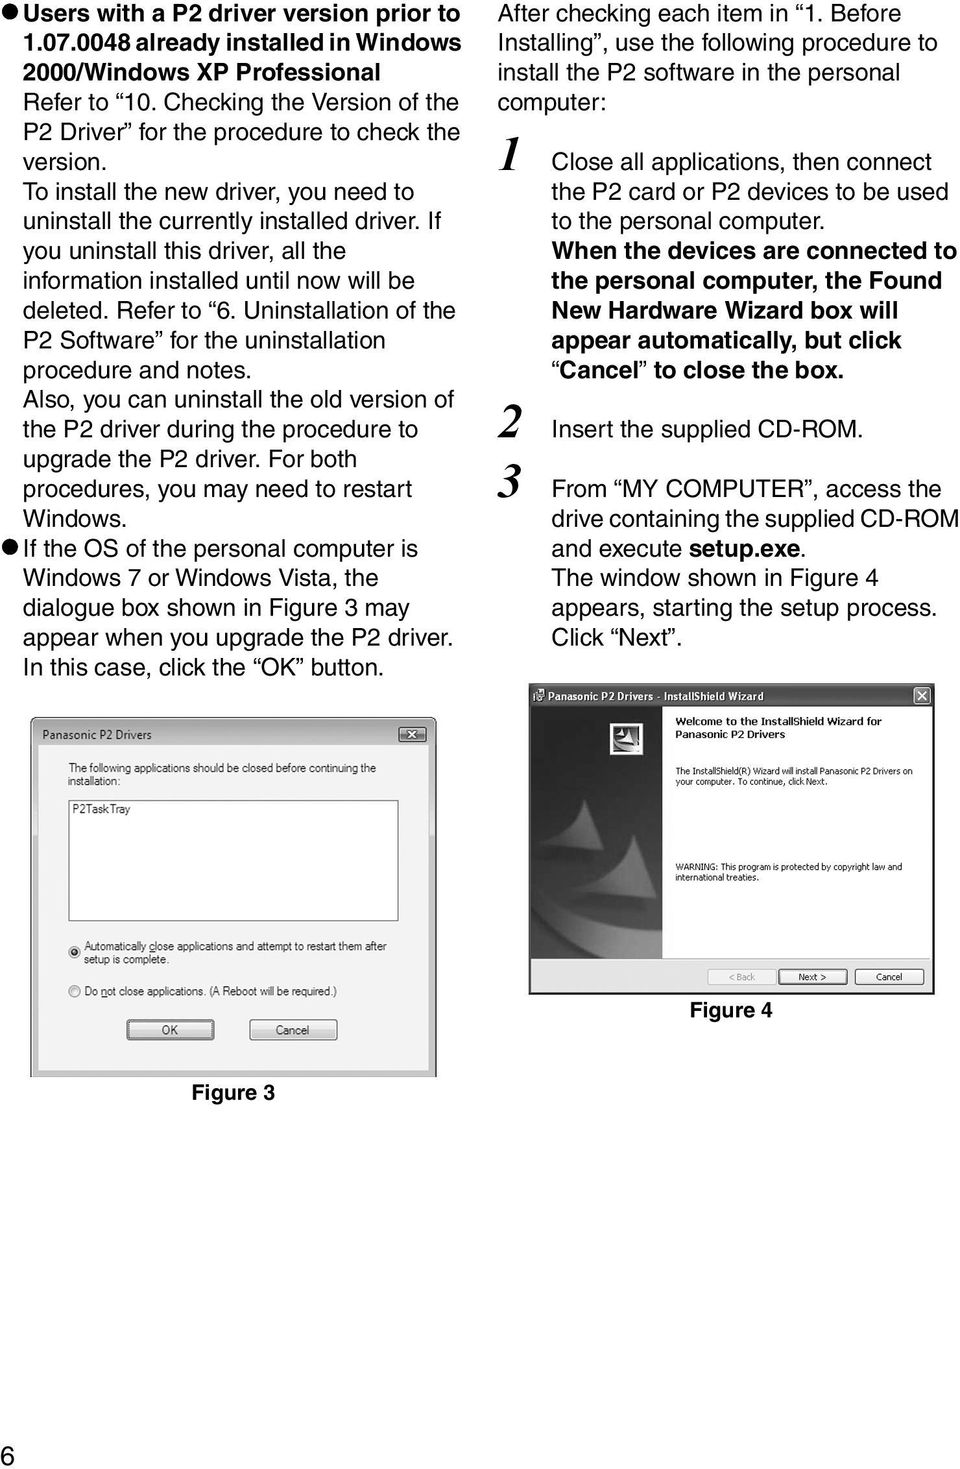 Uninstallation of the P2 Software for the uninstallation procedure and notes. Also, you can uninstall the old version of the P2 driver during the procedure to upgrade the P2 driver.